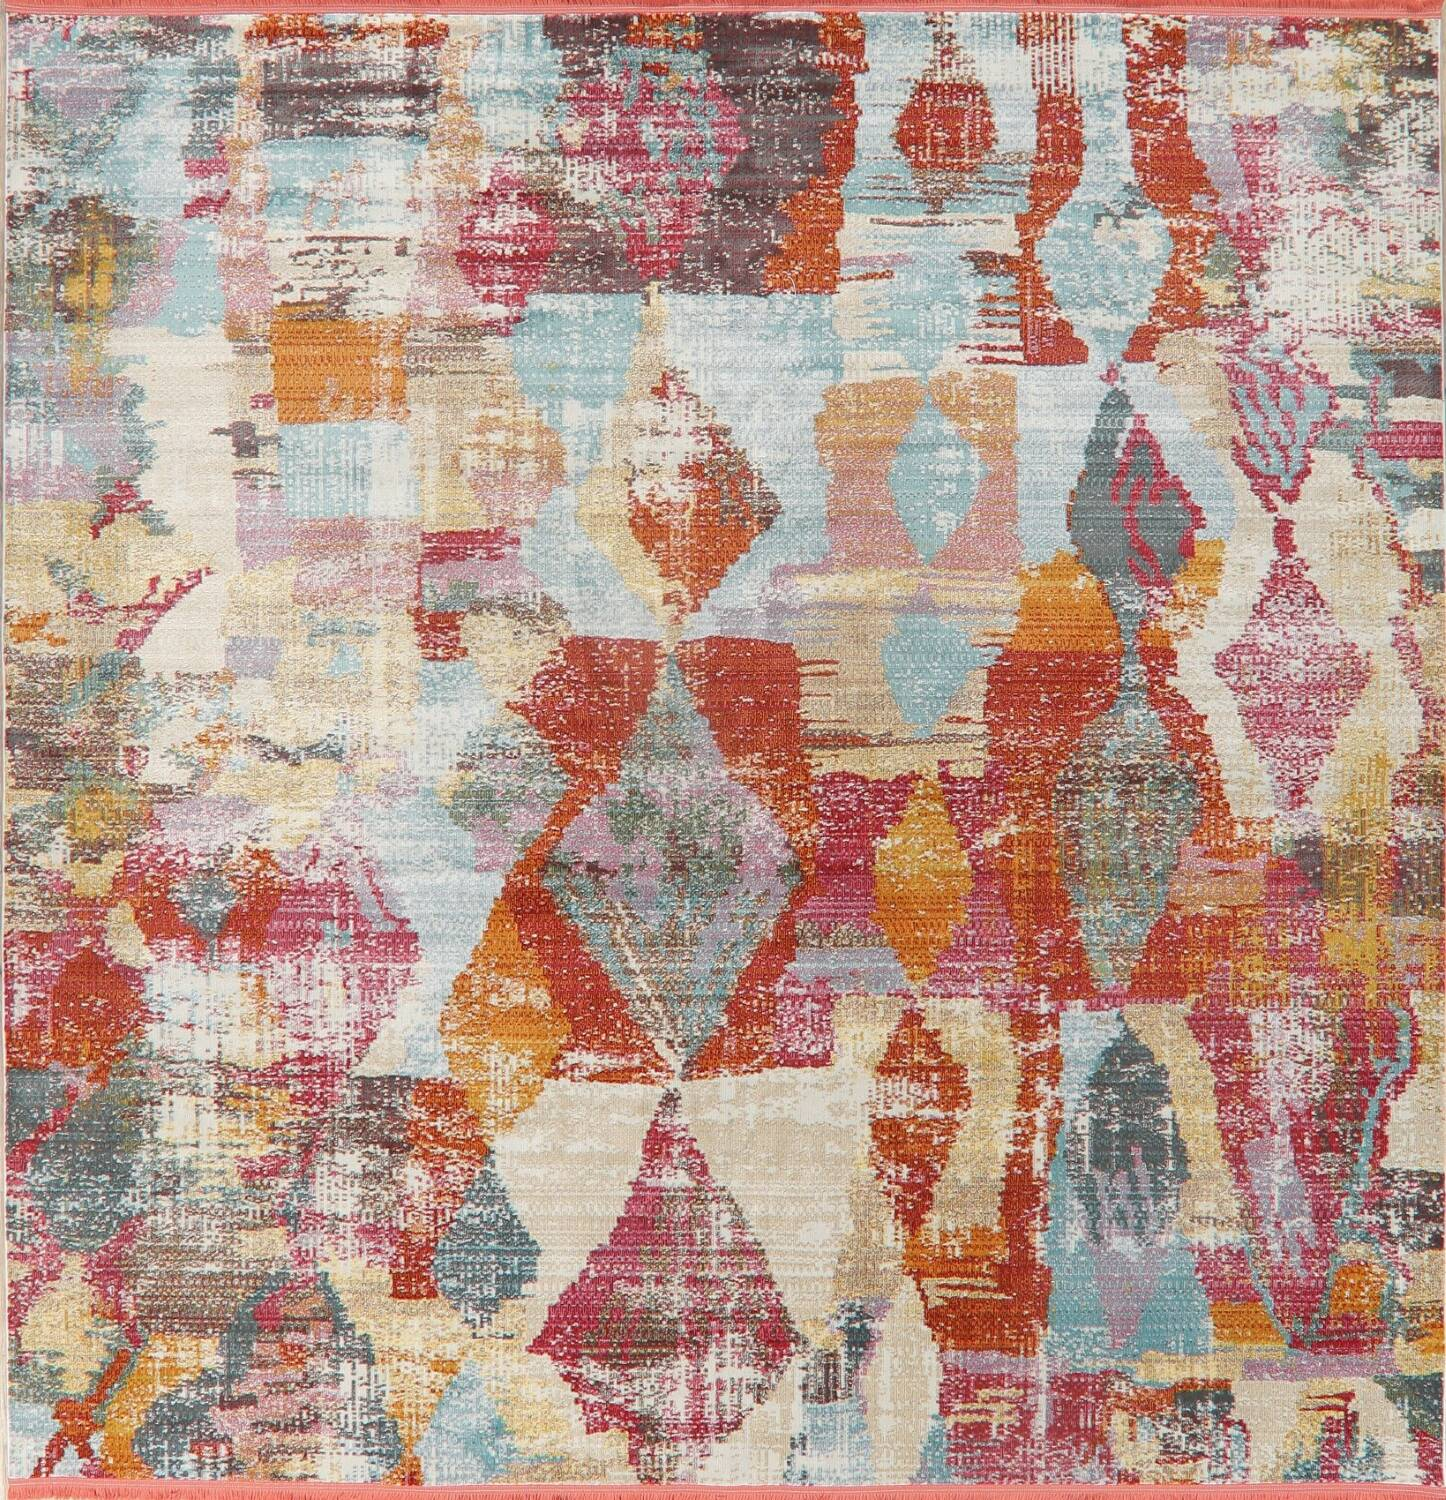 Vintage Style Abstract Distressed Heat-Set Area Rugs image 15